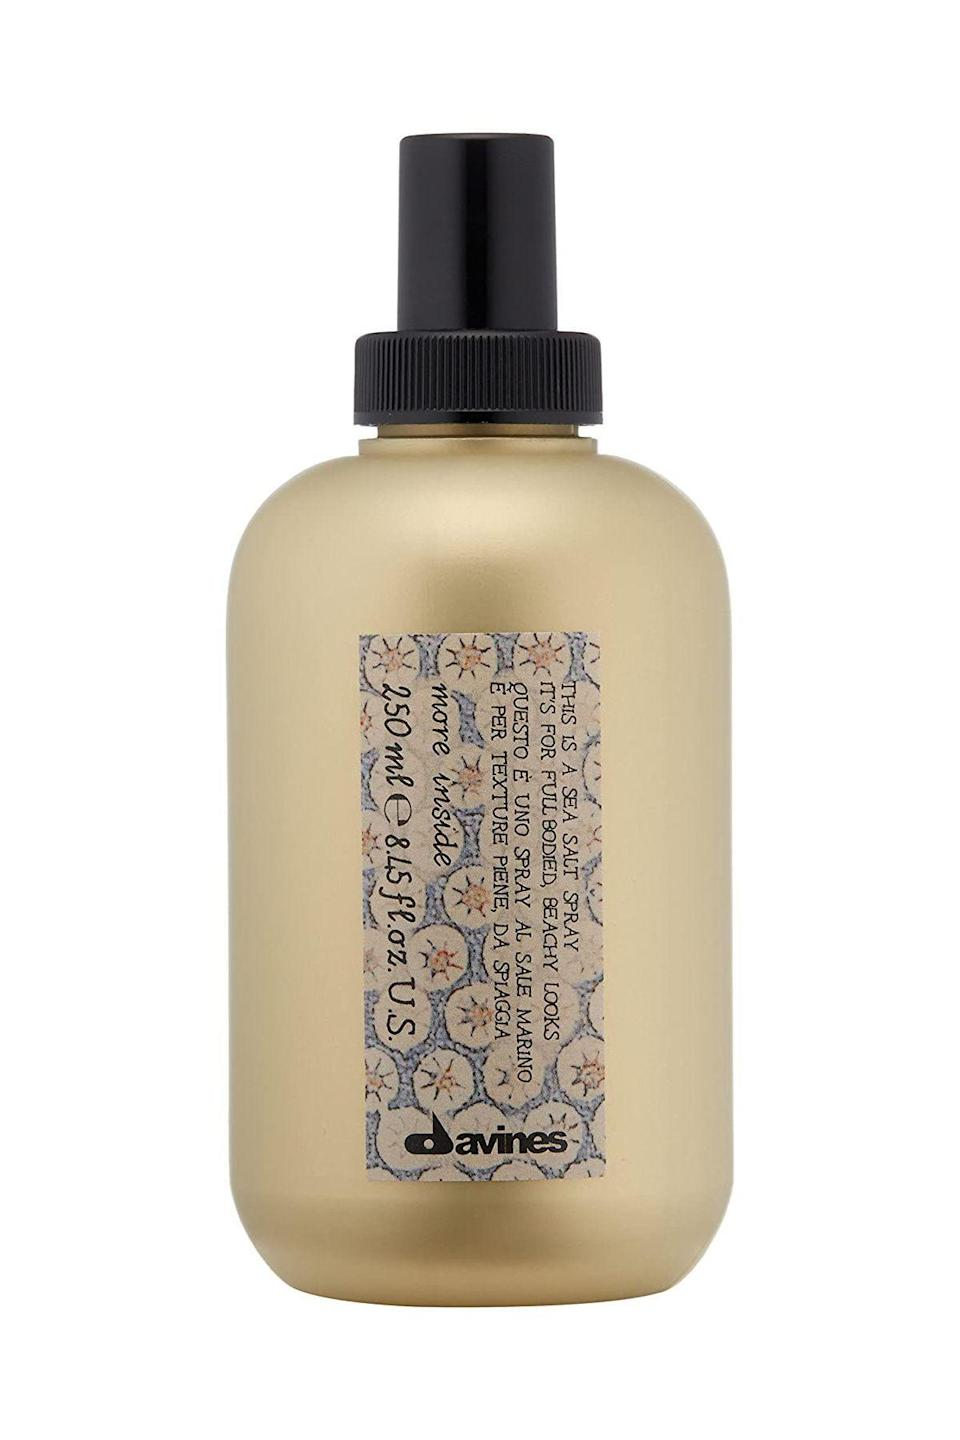 """<p><strong>Davines</strong></p><p>amazon.com</p><p><strong>$28.00</strong></p><p><a href=""""https://www.amazon.com/dp/B00GB8IA5C?tag=syn-yahoo-20&ascsubtag=%5Bartid%7C10058.g.2902%5Bsrc%7Cyahoo-us"""" rel=""""nofollow noopener"""" target=""""_blank"""" data-ylk=""""slk:SHOP IT"""" class=""""link rapid-noclick-resp"""">SHOP IT</a></p><p>Chicago-based hairstylist Ryan Babbitt relies on this salt spray to give his clients the windblown curls they crave. Points awarded for the effortless matte finish that adds hold and body.</p>"""